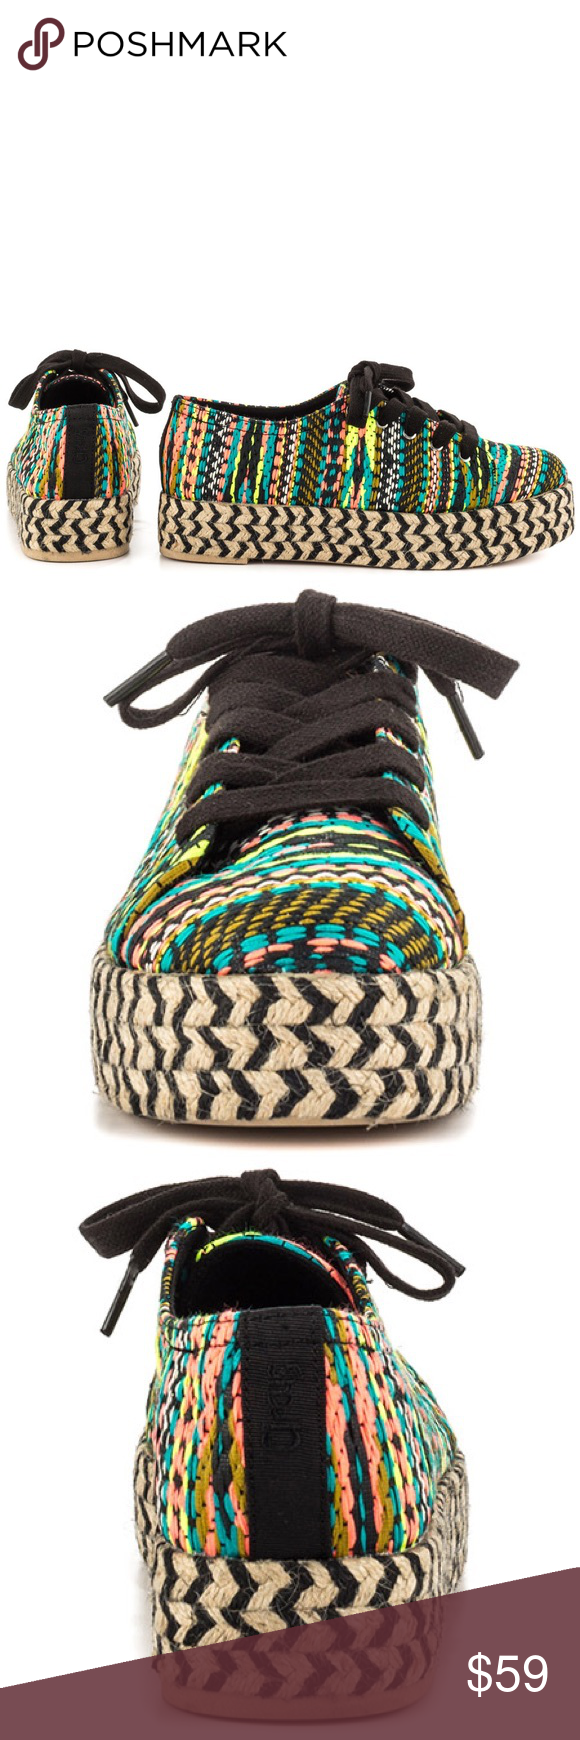 6b9f374bc06fca Circus by Sam Edelman Brandon Platform Sneakers Bring out your spunky side  in the Brandon. This vibrant sneaker features a black and white canvas  printed ...